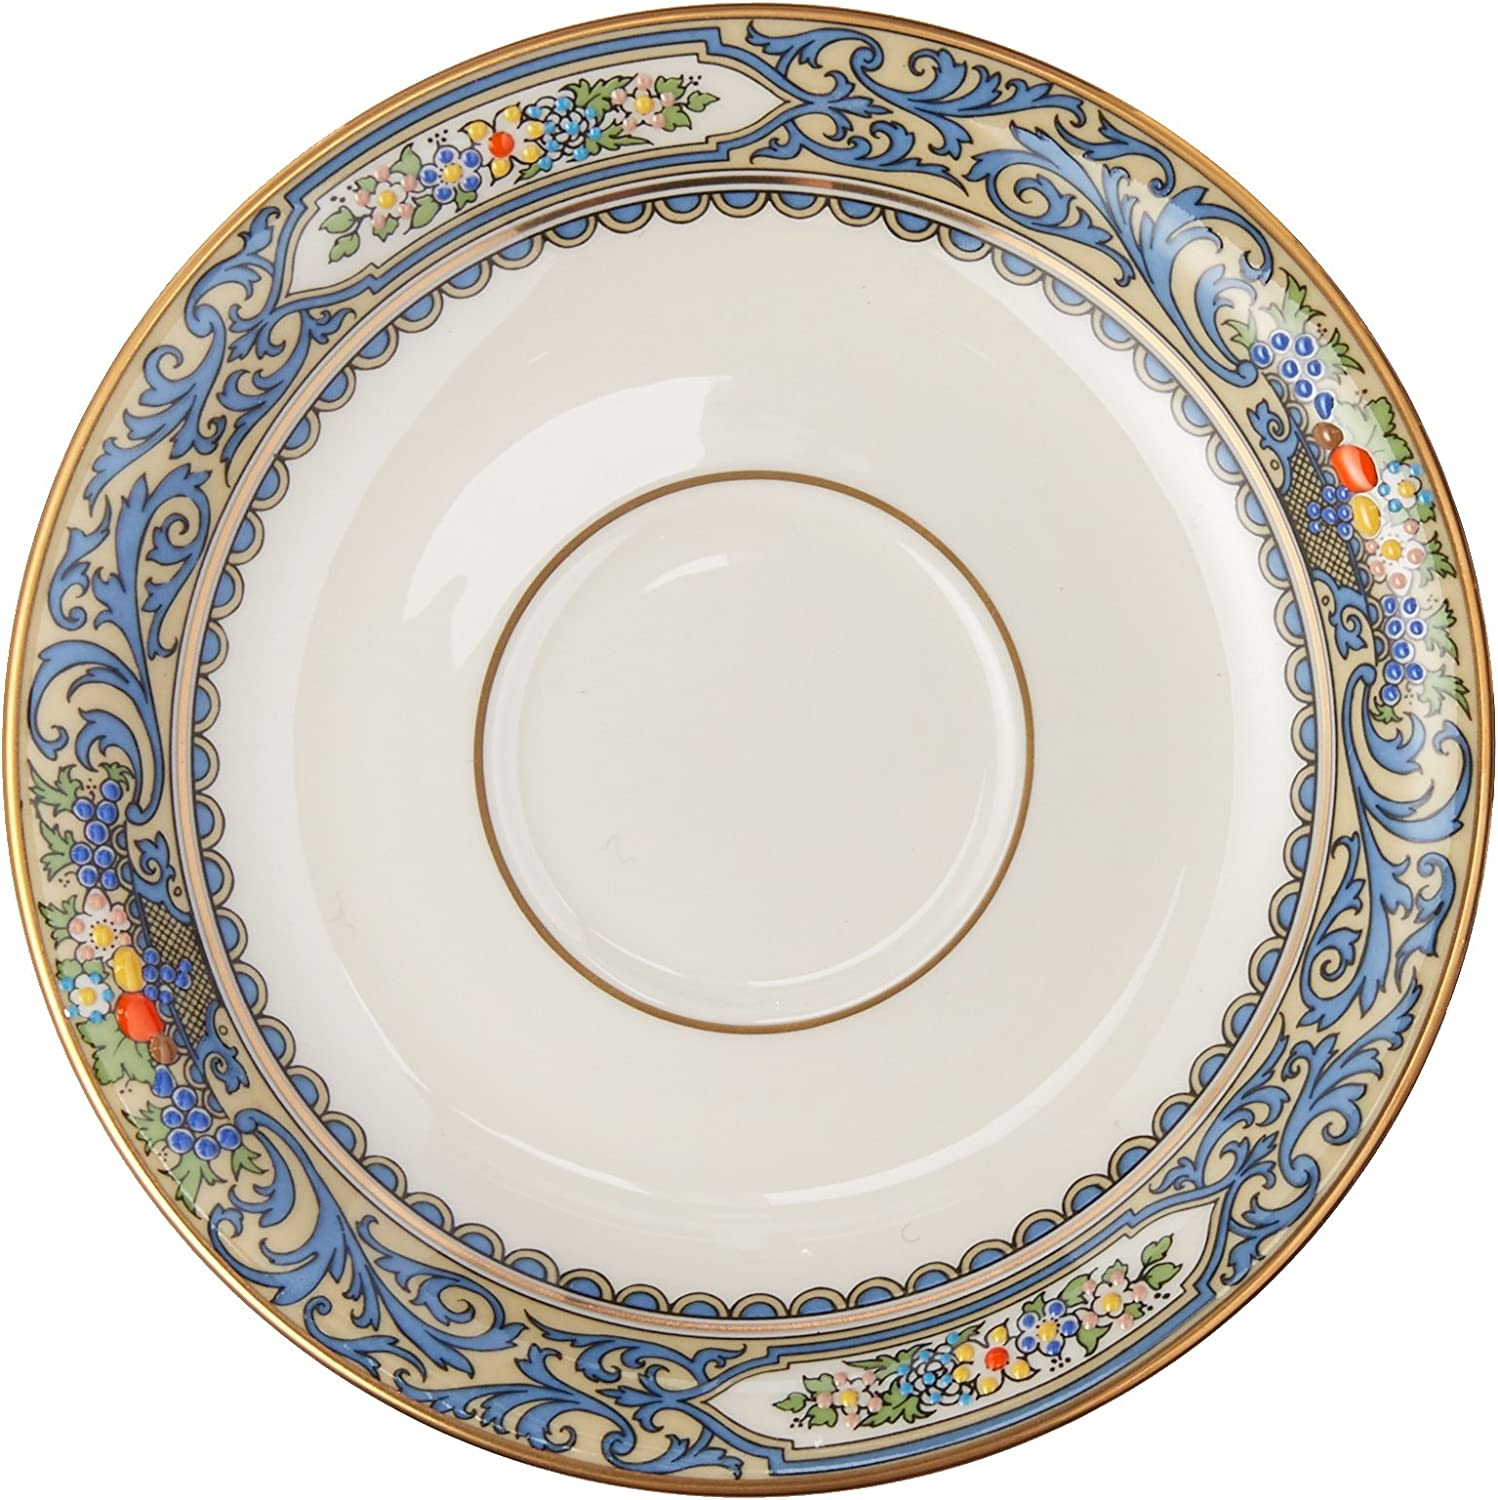 Lenox Autumn Ivory New arrival Saucer Quantity limited